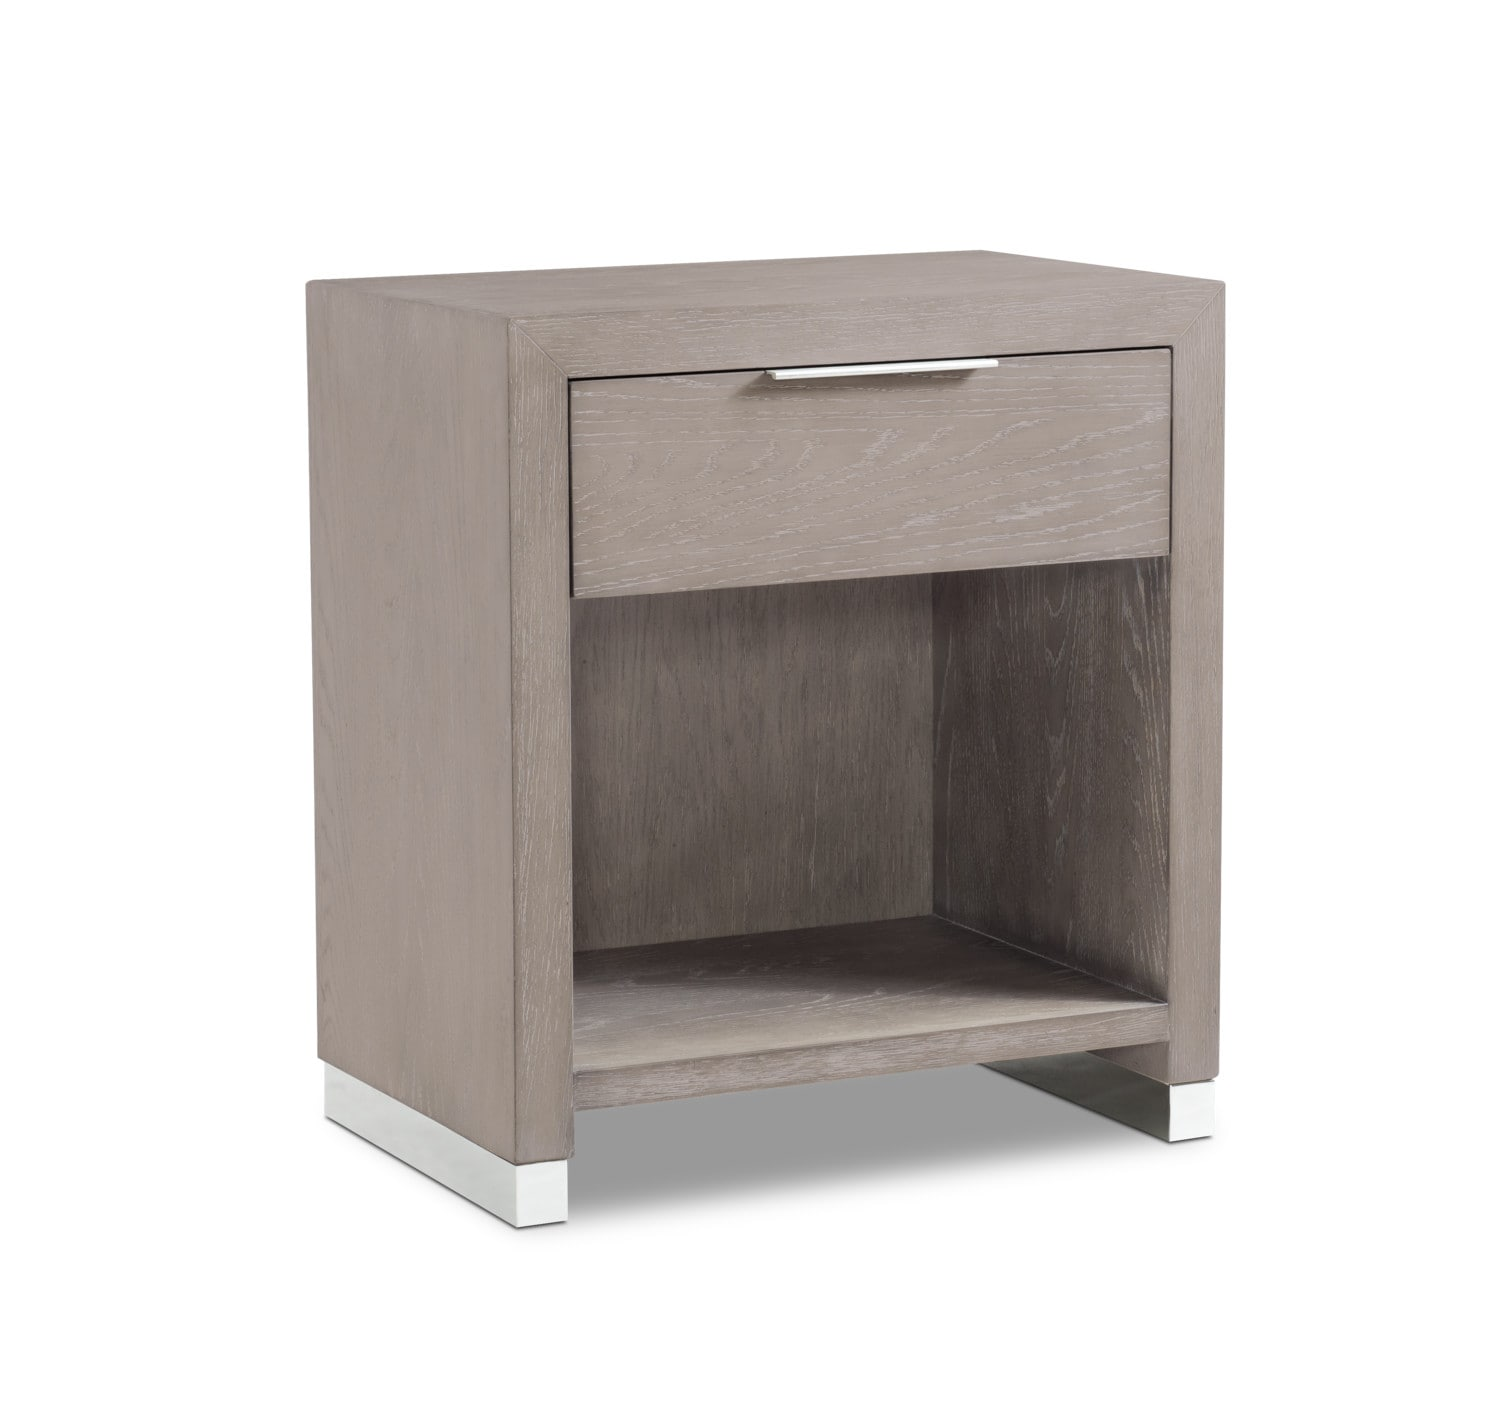 Bedroom Furniture - Zen Nightstand - Urban Gray